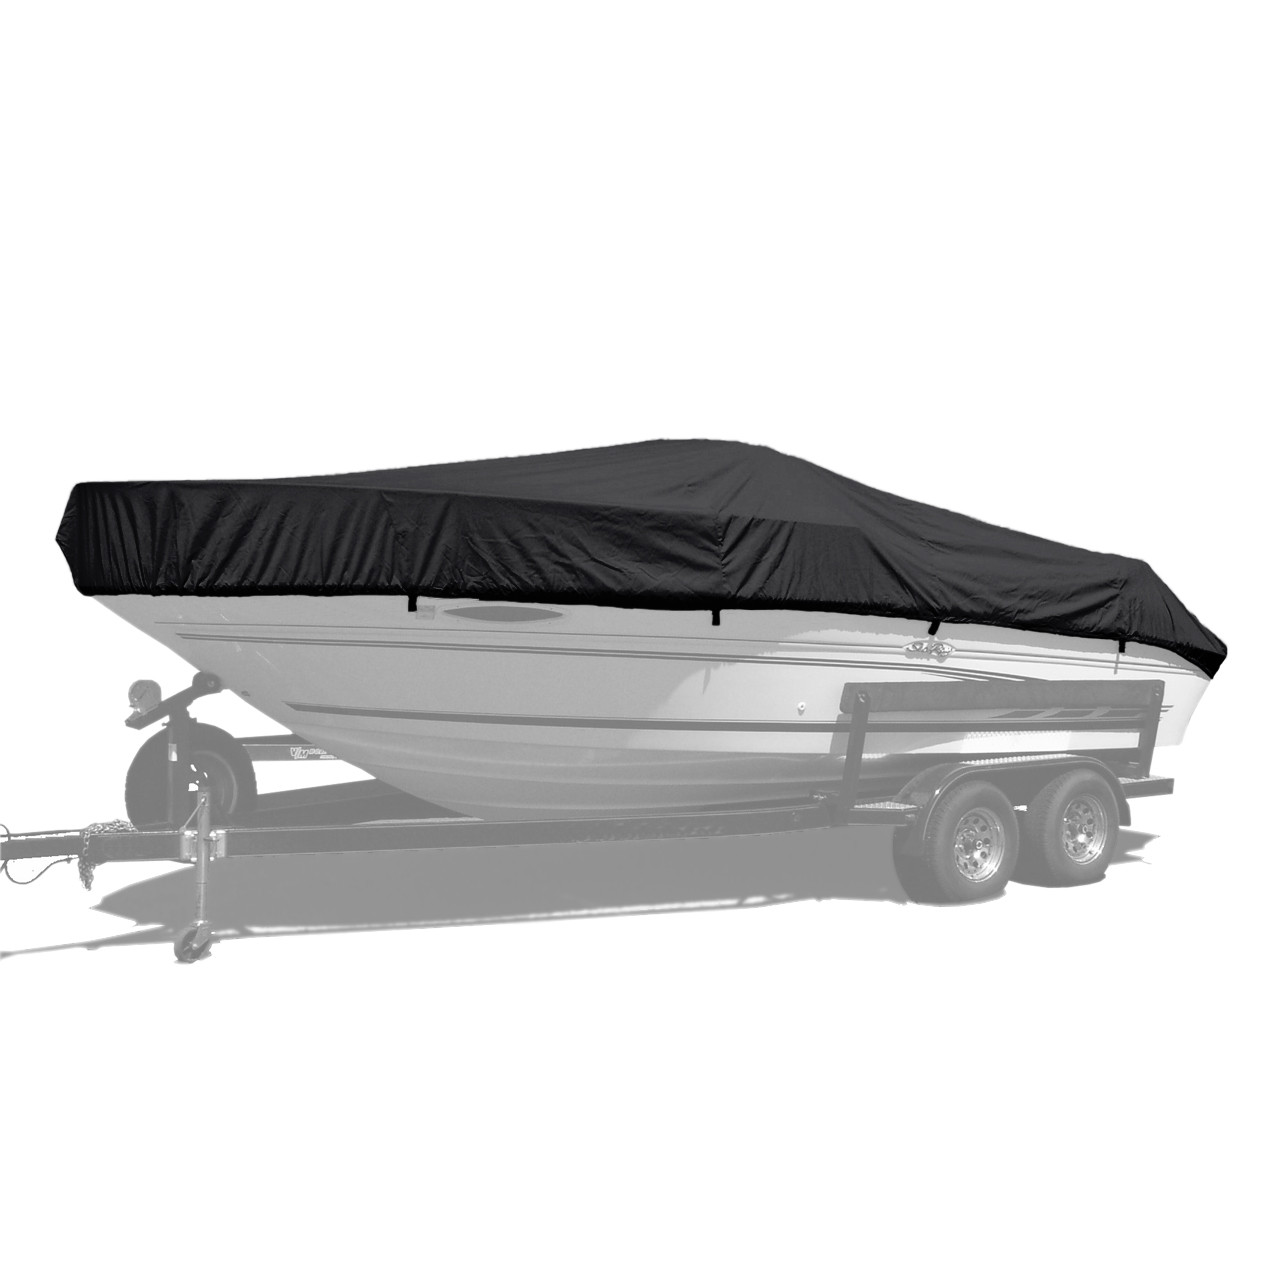 hight resolution of westland custom boat cover with jet black sunbrella fabric